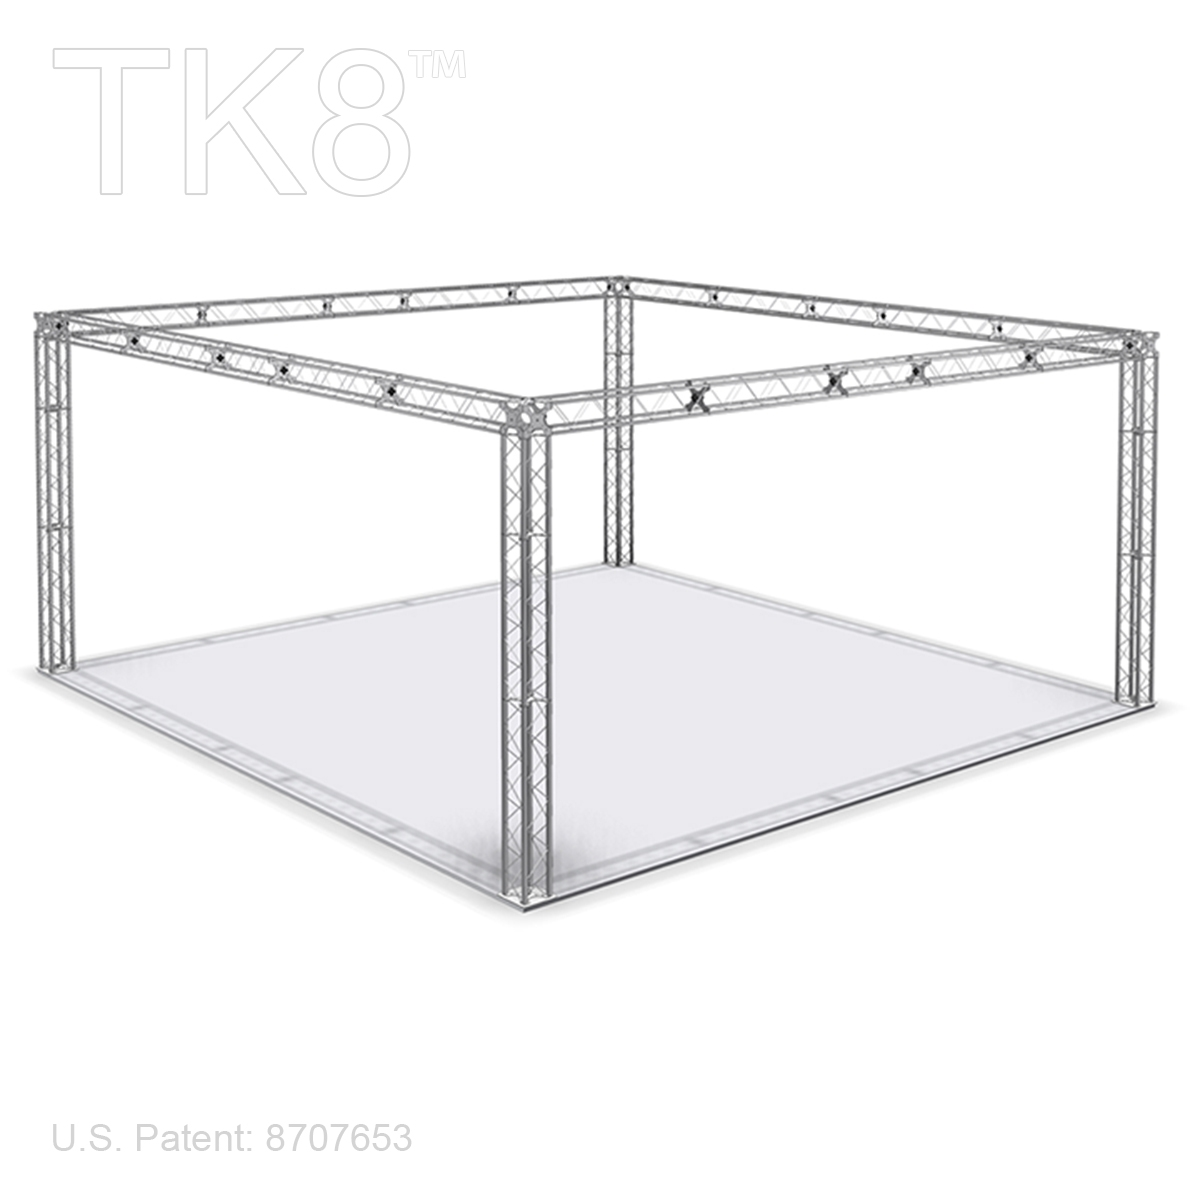 WILLIAM 10 - 20FT X 20FT TK8 ALUMINUM BOX TRUSS BOOTH